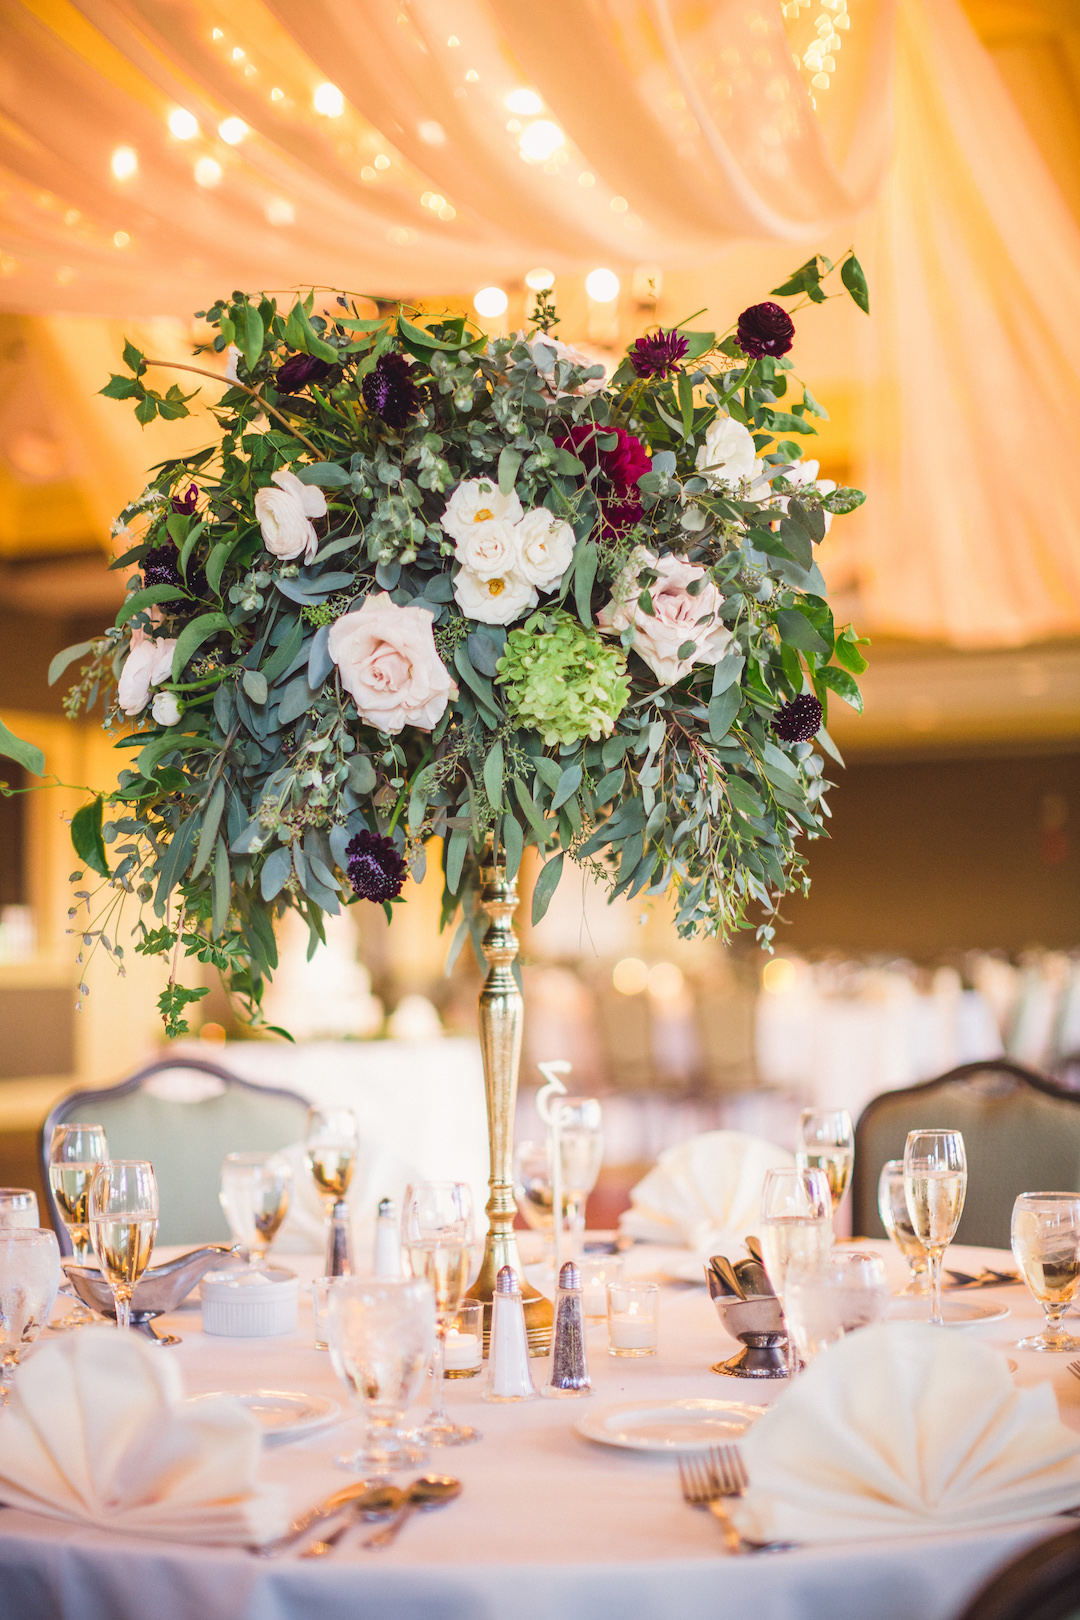 Tall wedding centerpiece: Elegant country club wedding captured by Henington Photography. See more elegant wedding ideas at CHItheeWED.com!